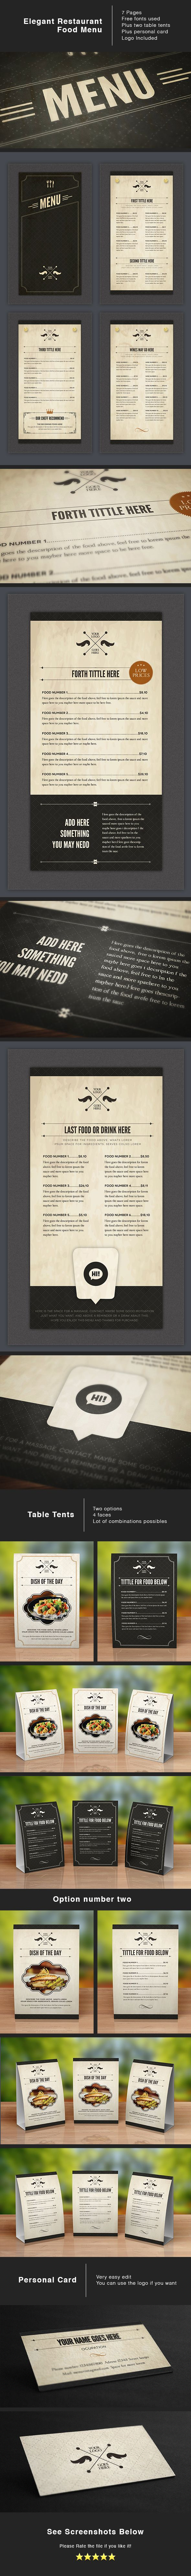 menu design http://www.behance.net/gallery/Design-Food-Stationery/7648133